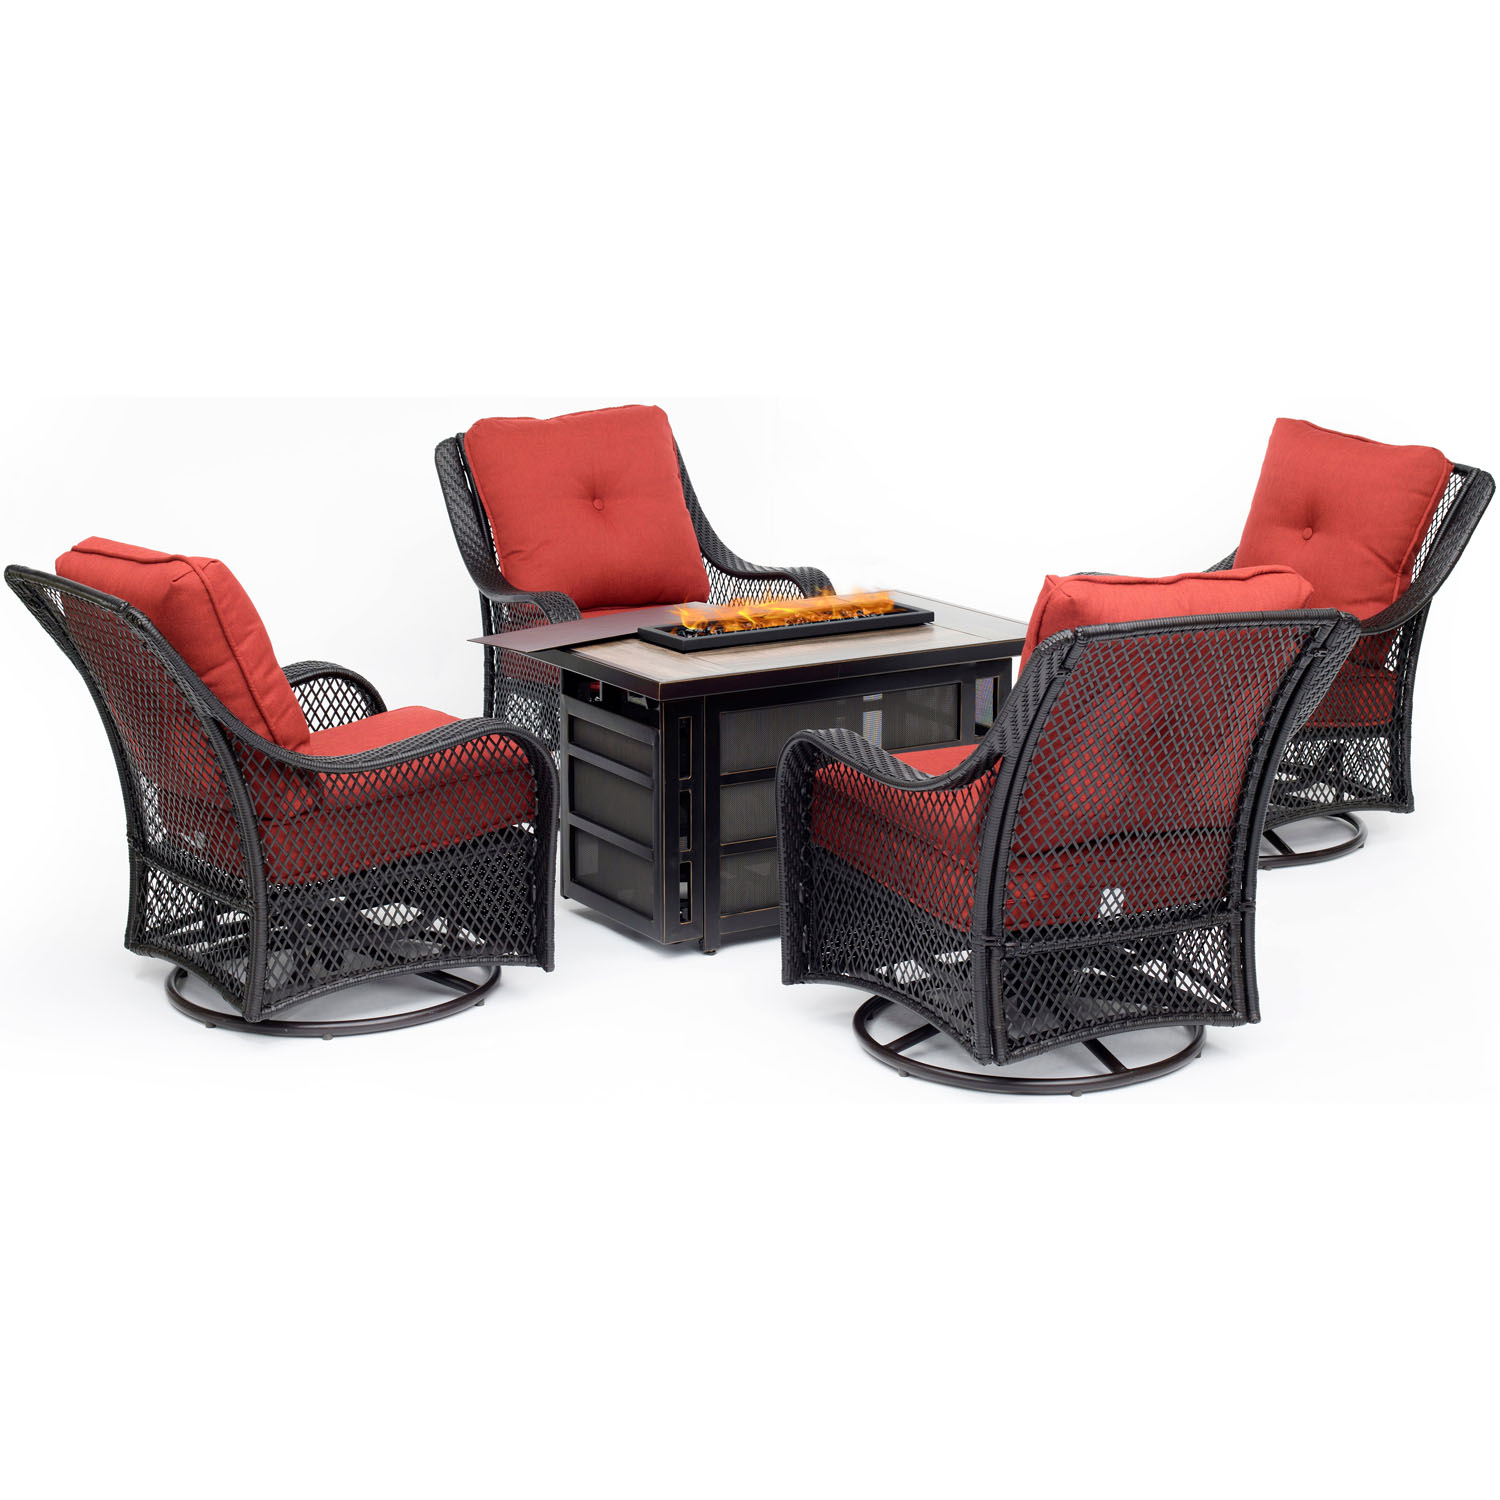 Hanover Orleans 5-Piece Firepit Chat Set with a 30,000 BTU Firepit Table and 4 Woven Swivel Gliders in Autumn... by Hanover